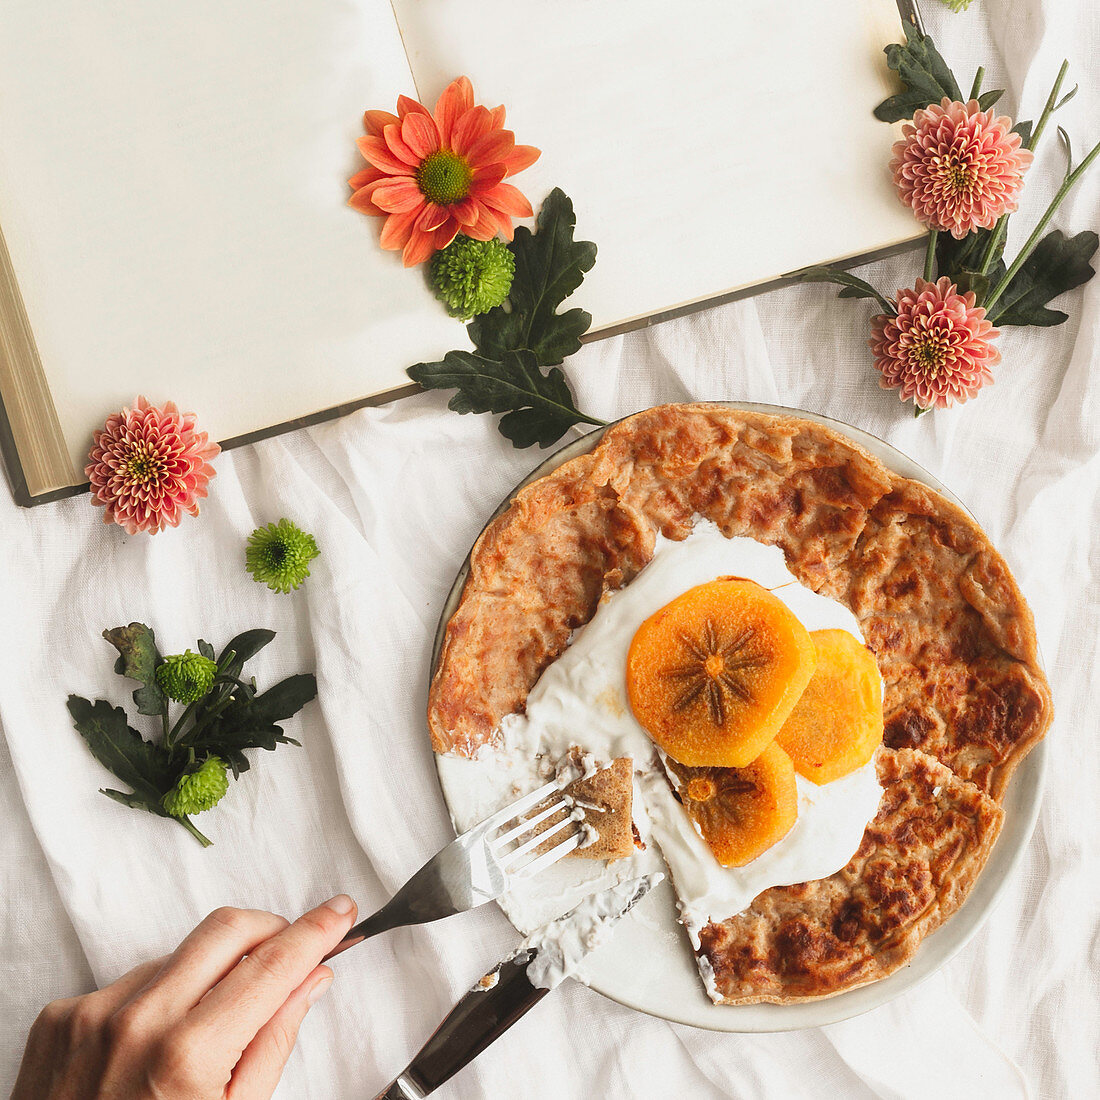 Homemade crepes with cream and sliced persimmon